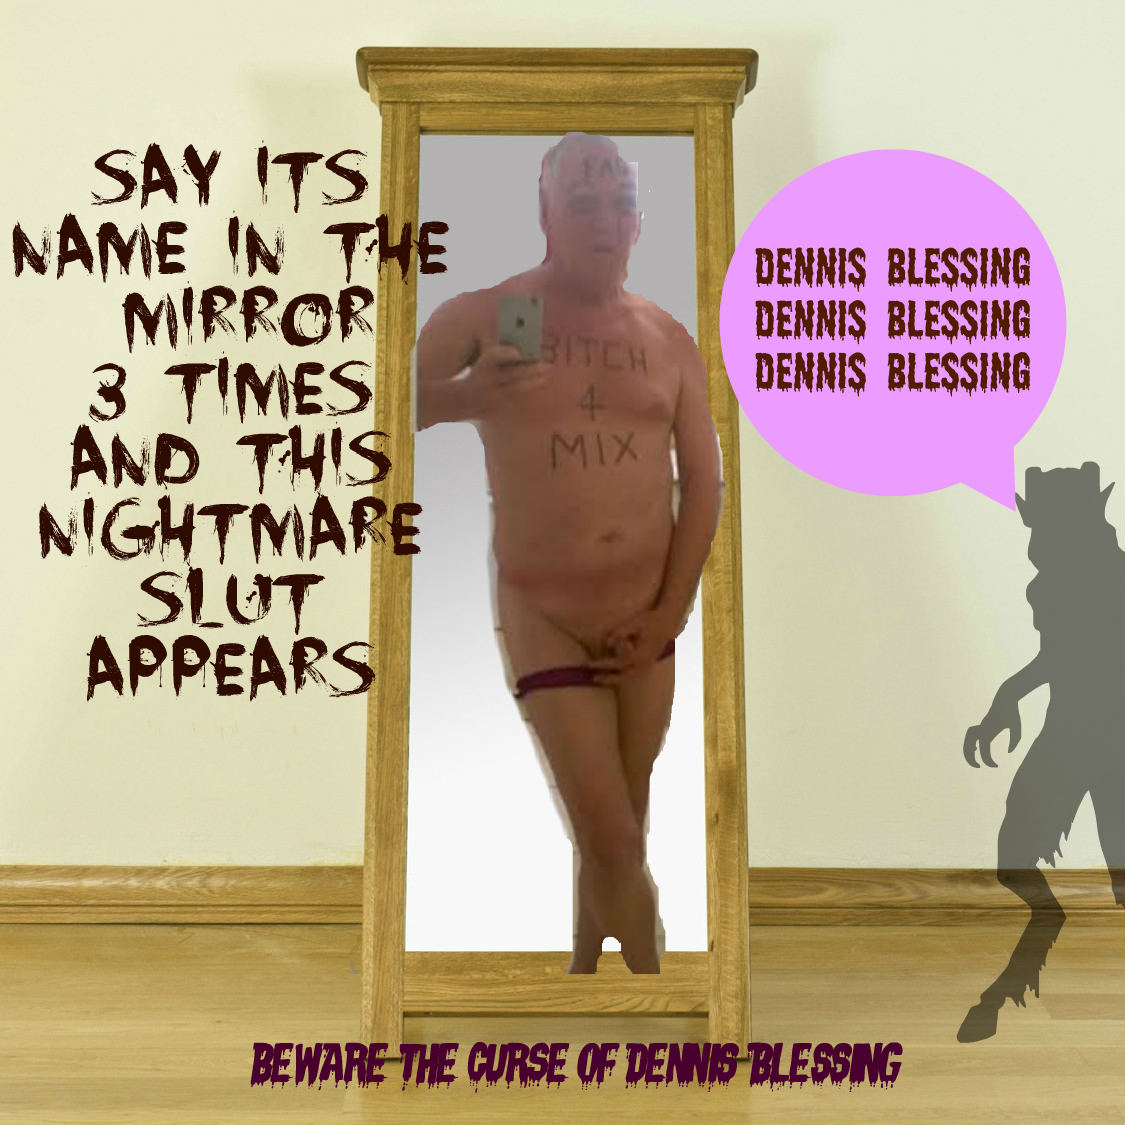 curse of dennis blessing